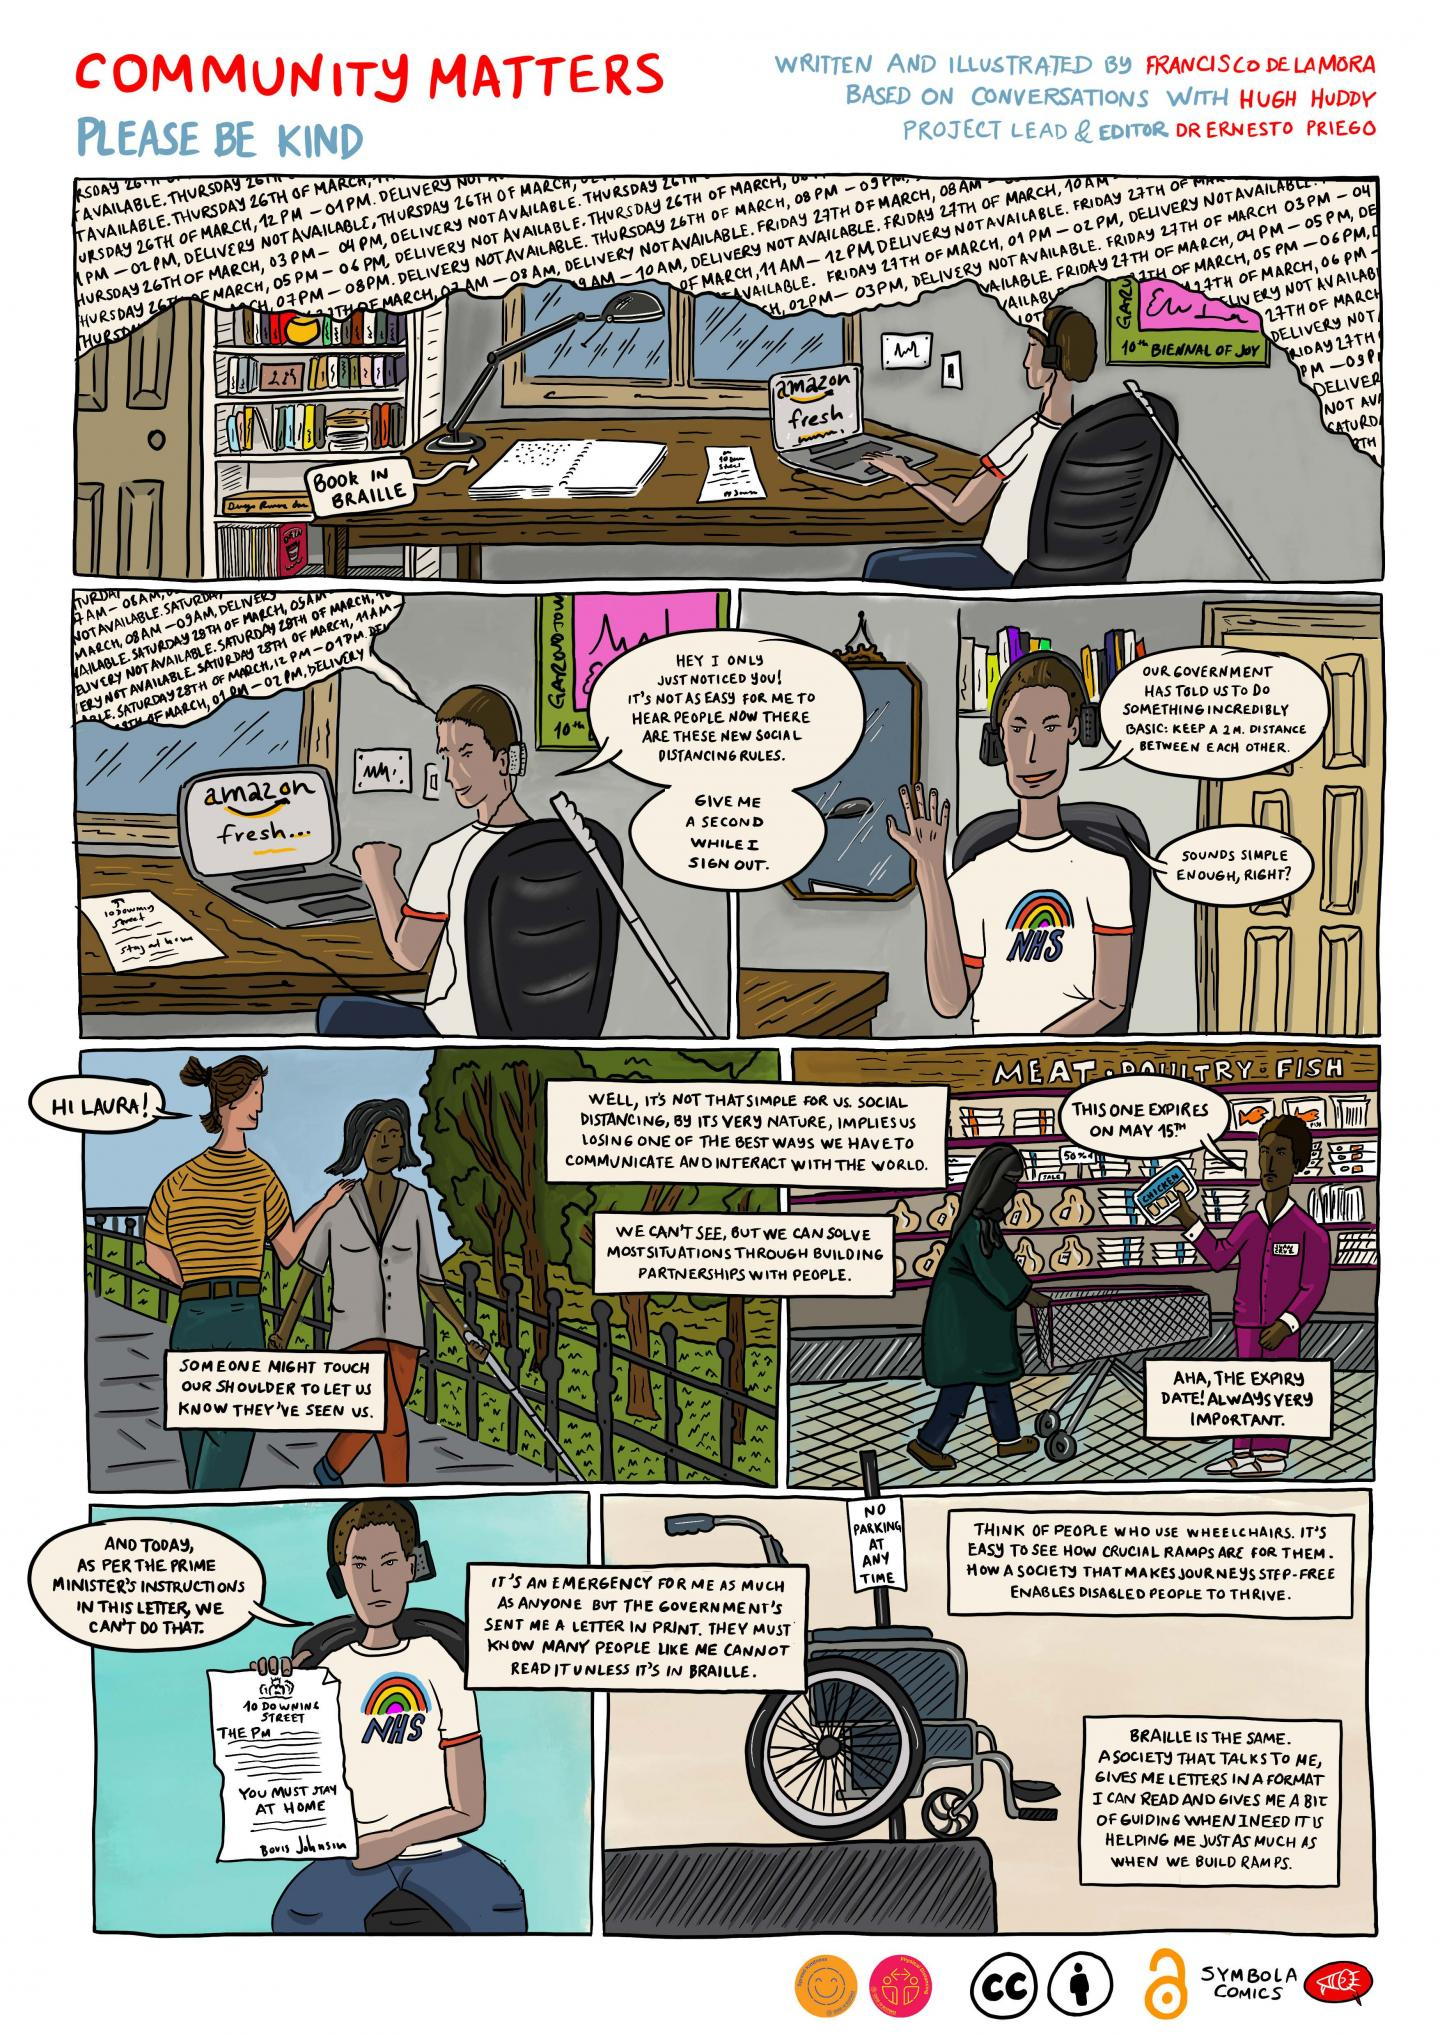 Community Matters: Please Be Kind. (A COVID-19 Response Comic).